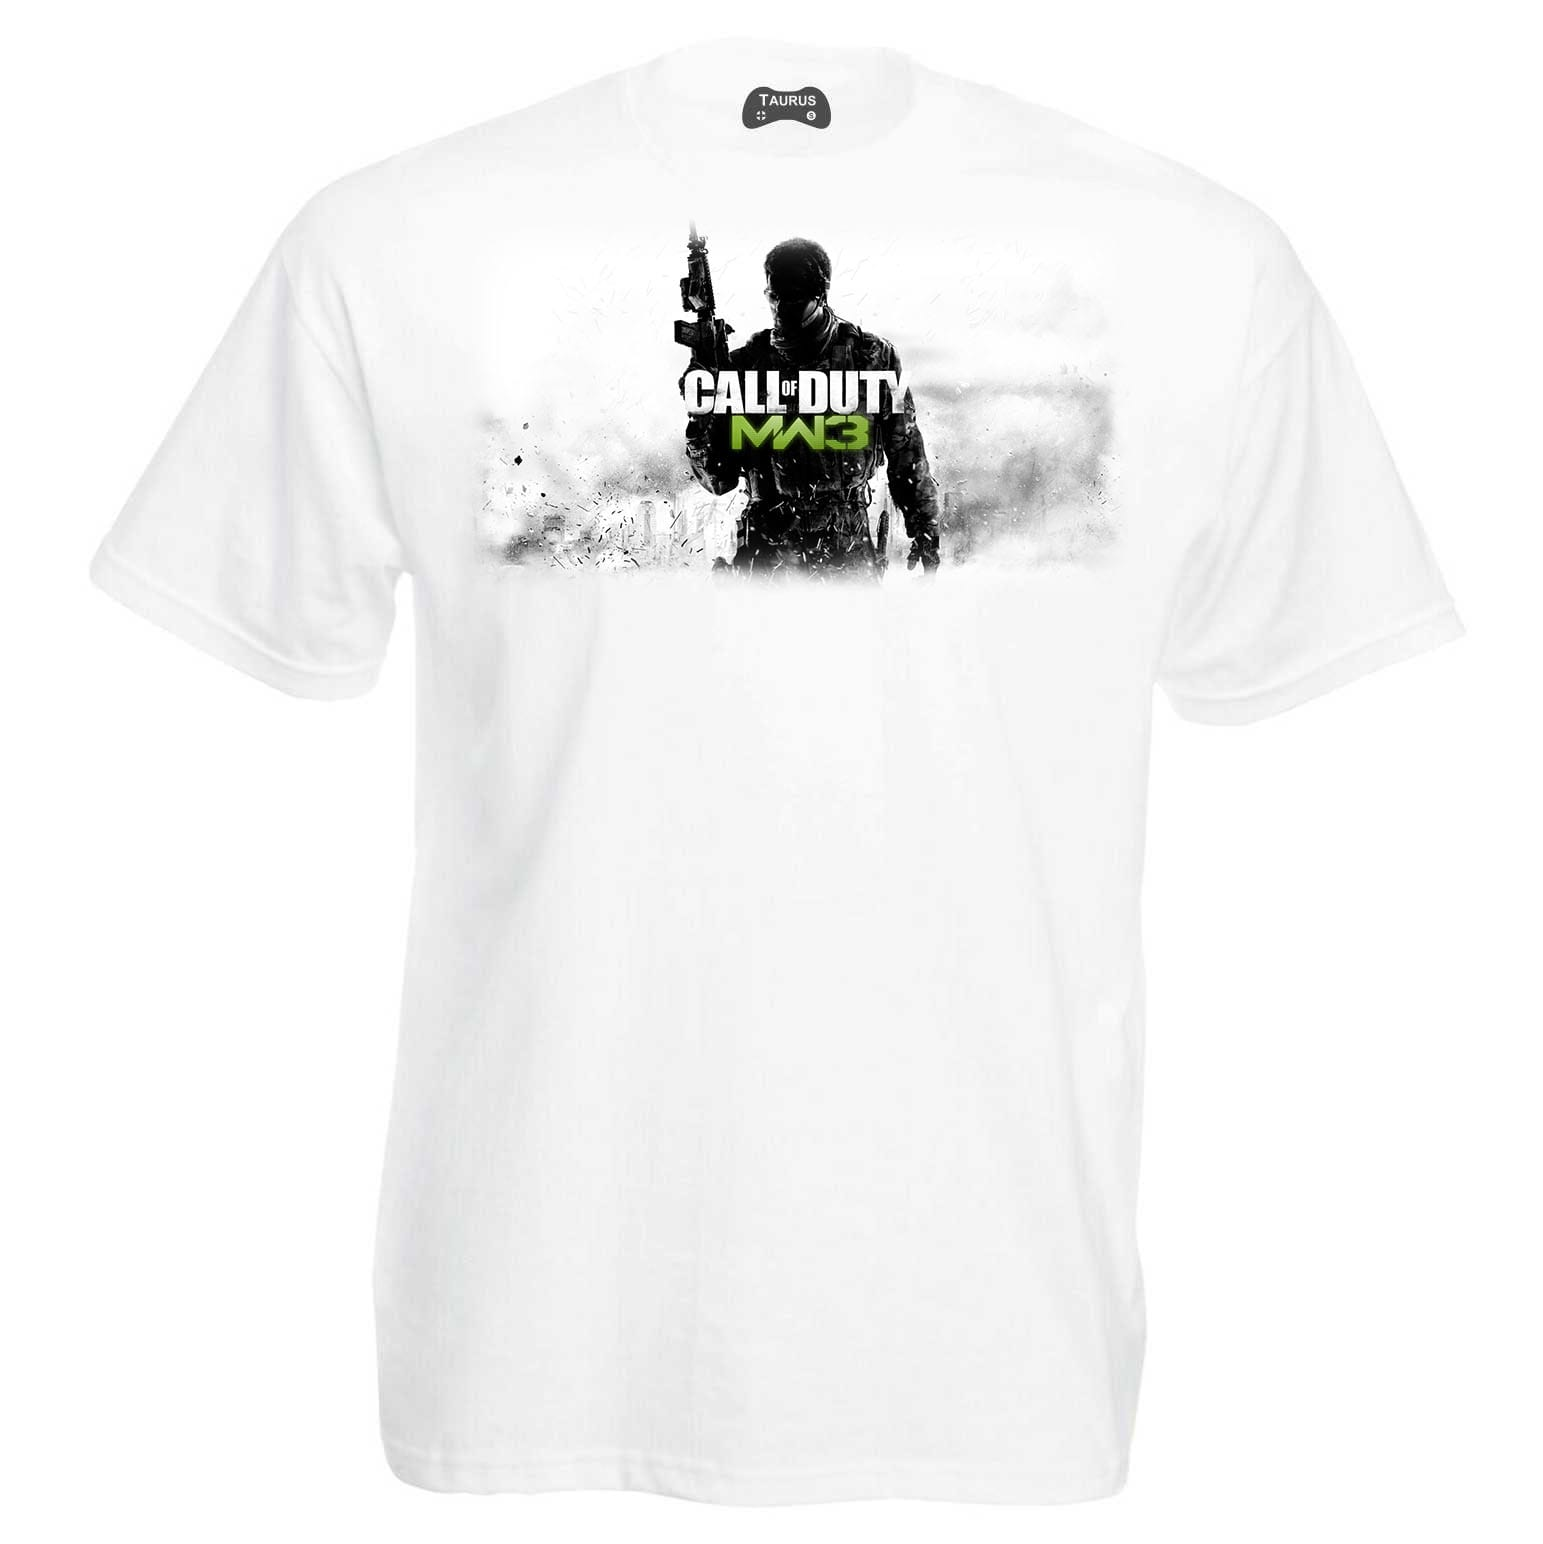 Call Of Duty T-Shirt Modern Warfare 3